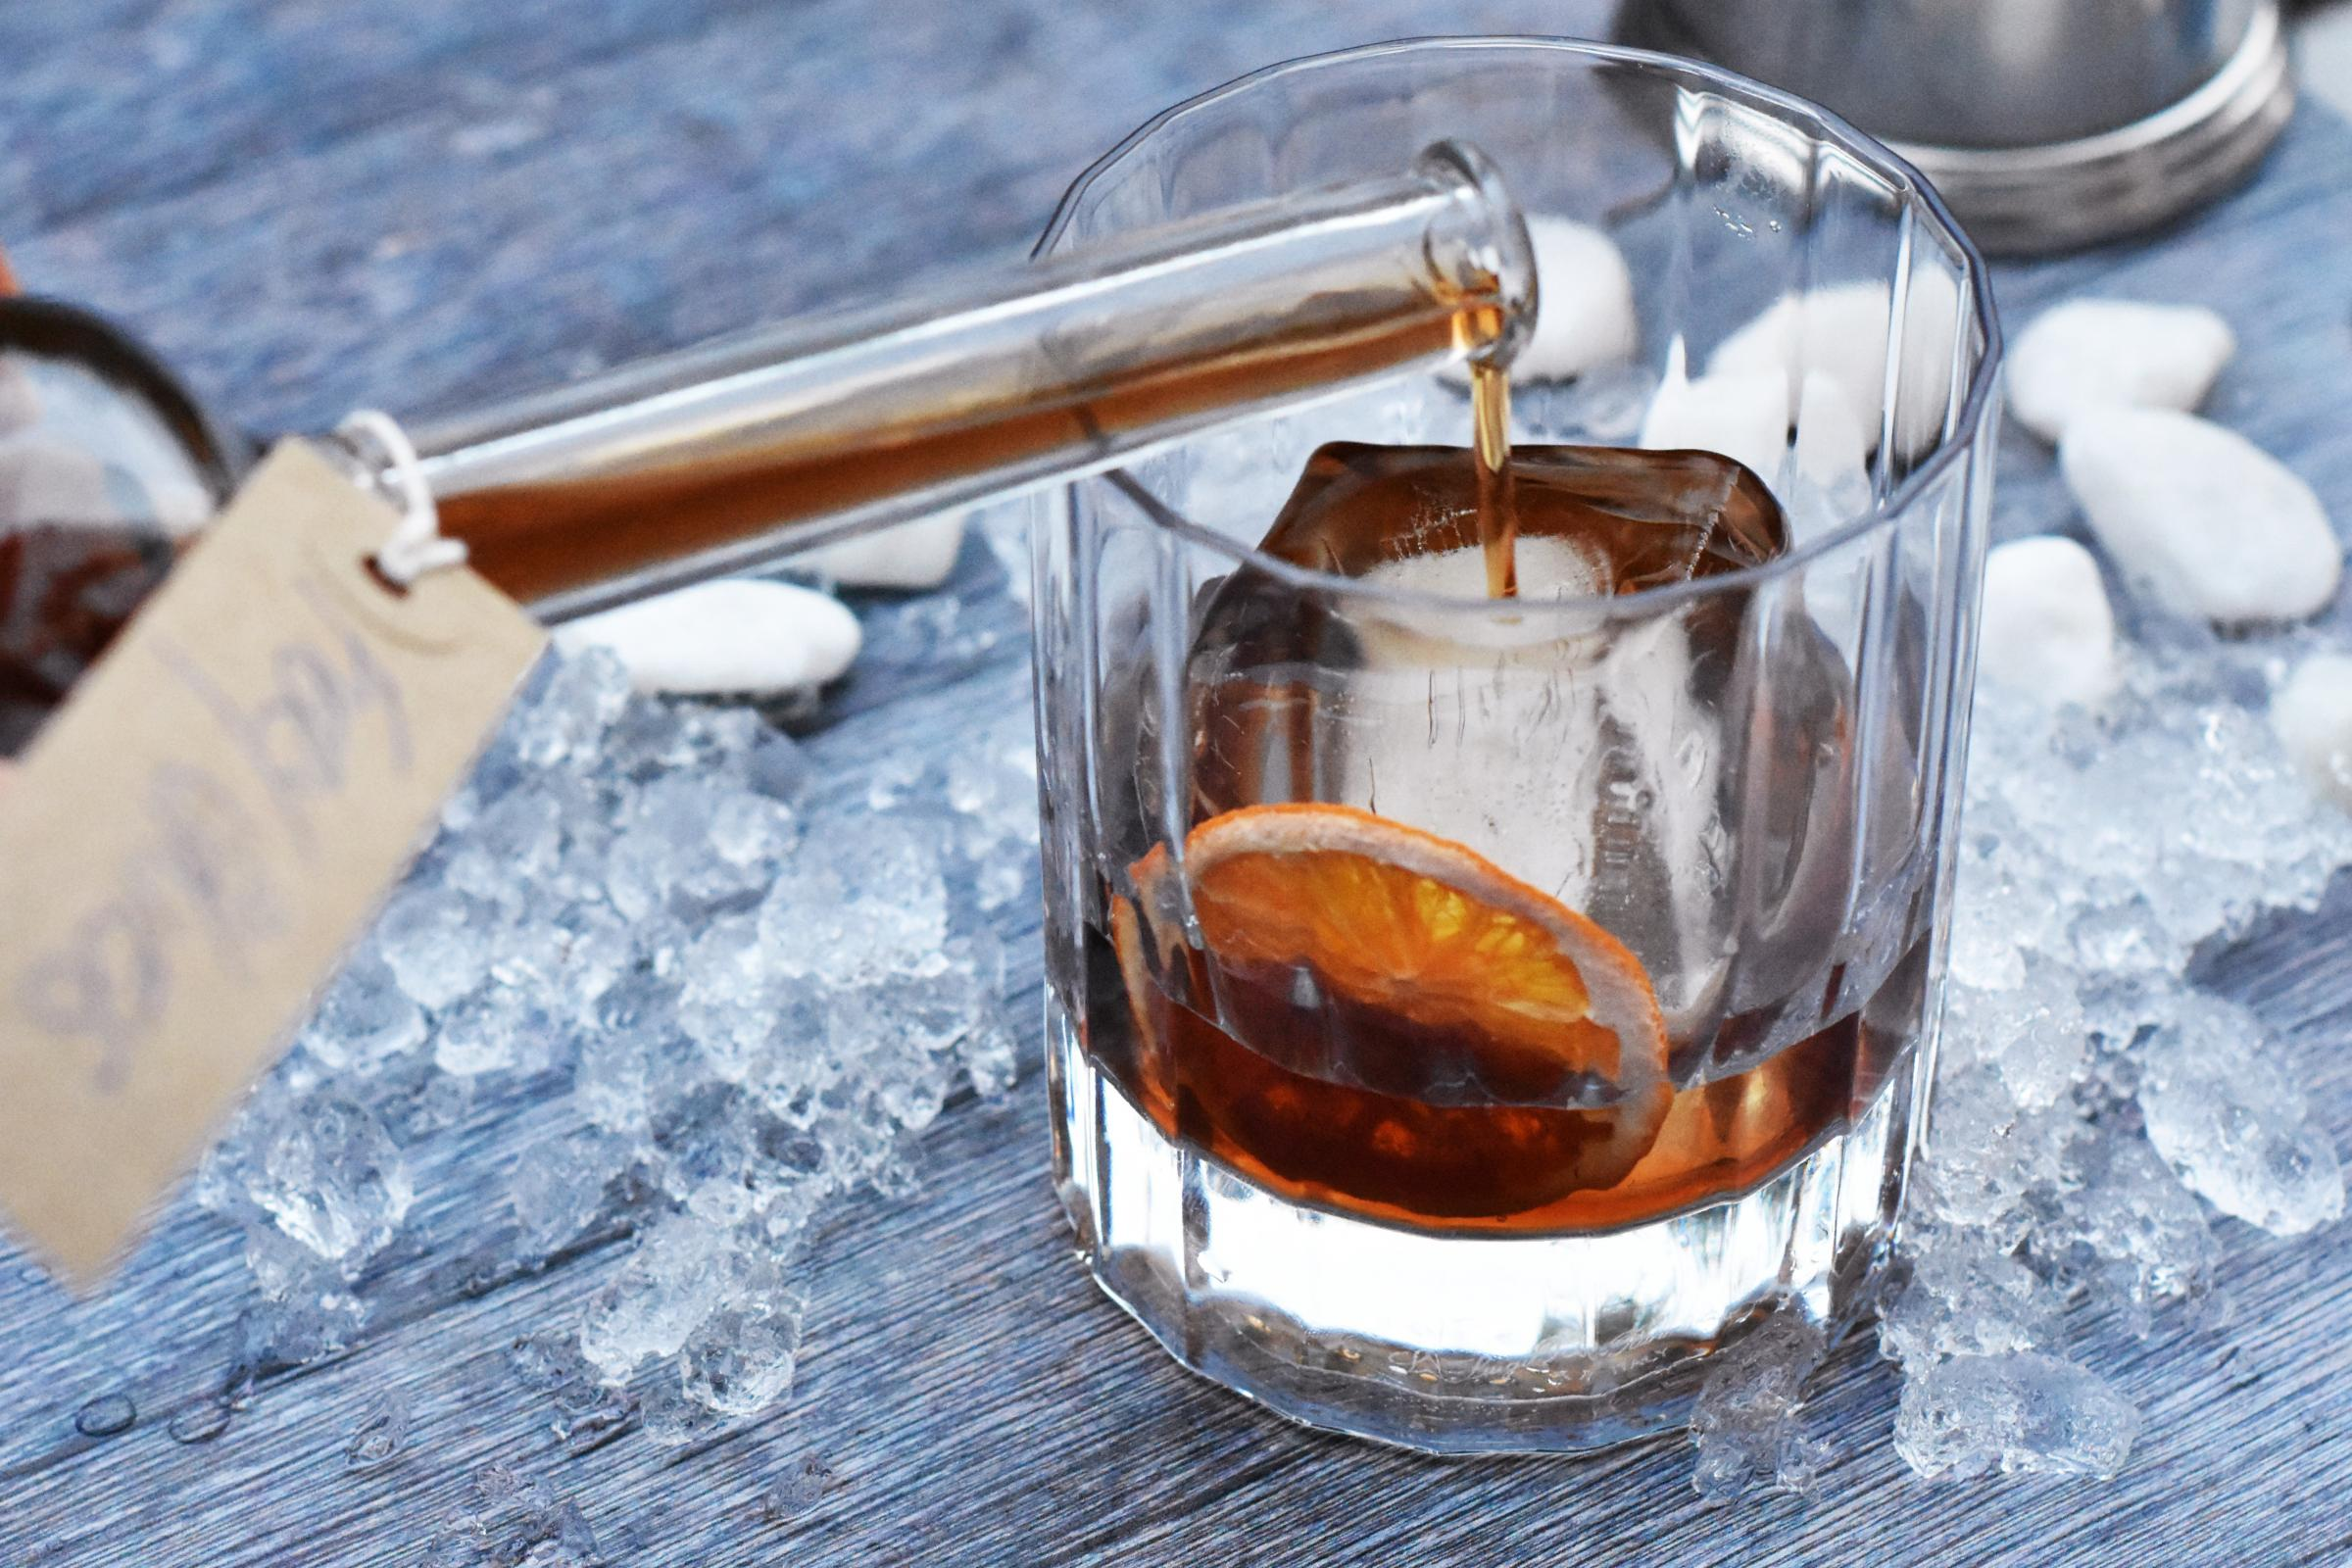 Whisky cocktail recipes for Burns Night